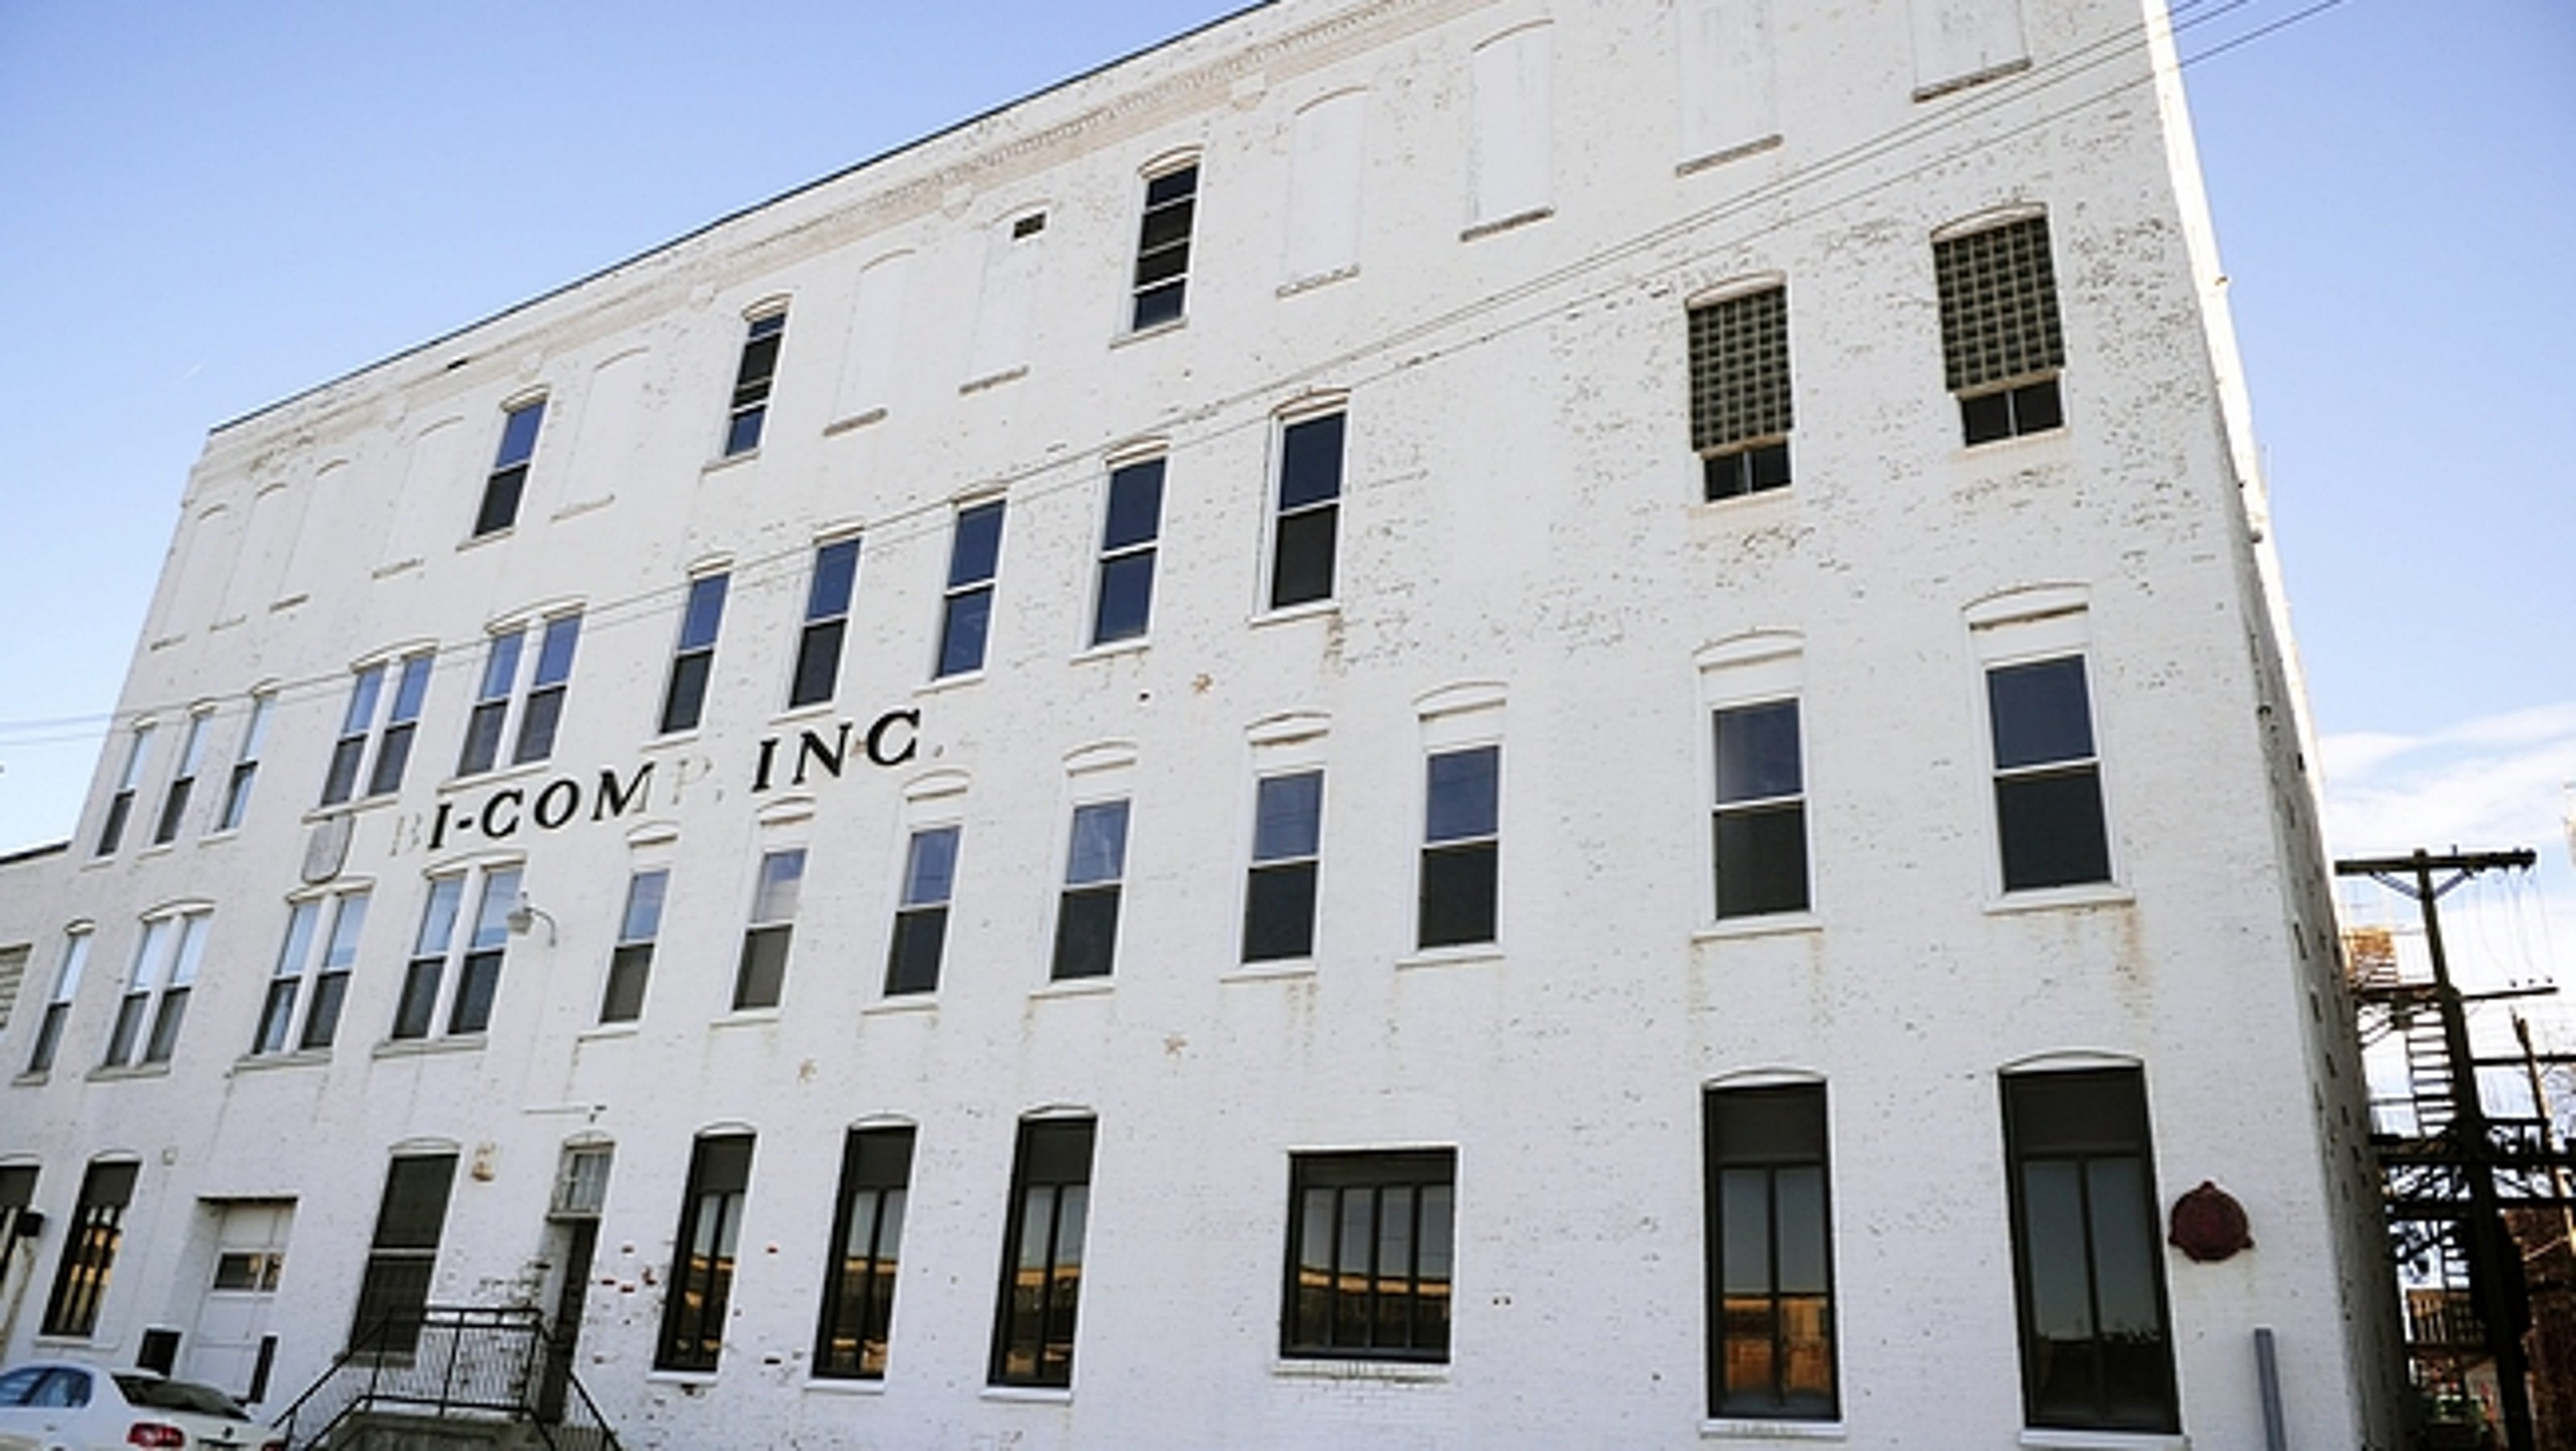 Live Band Members Buy York Property Plan Millions In Renovations